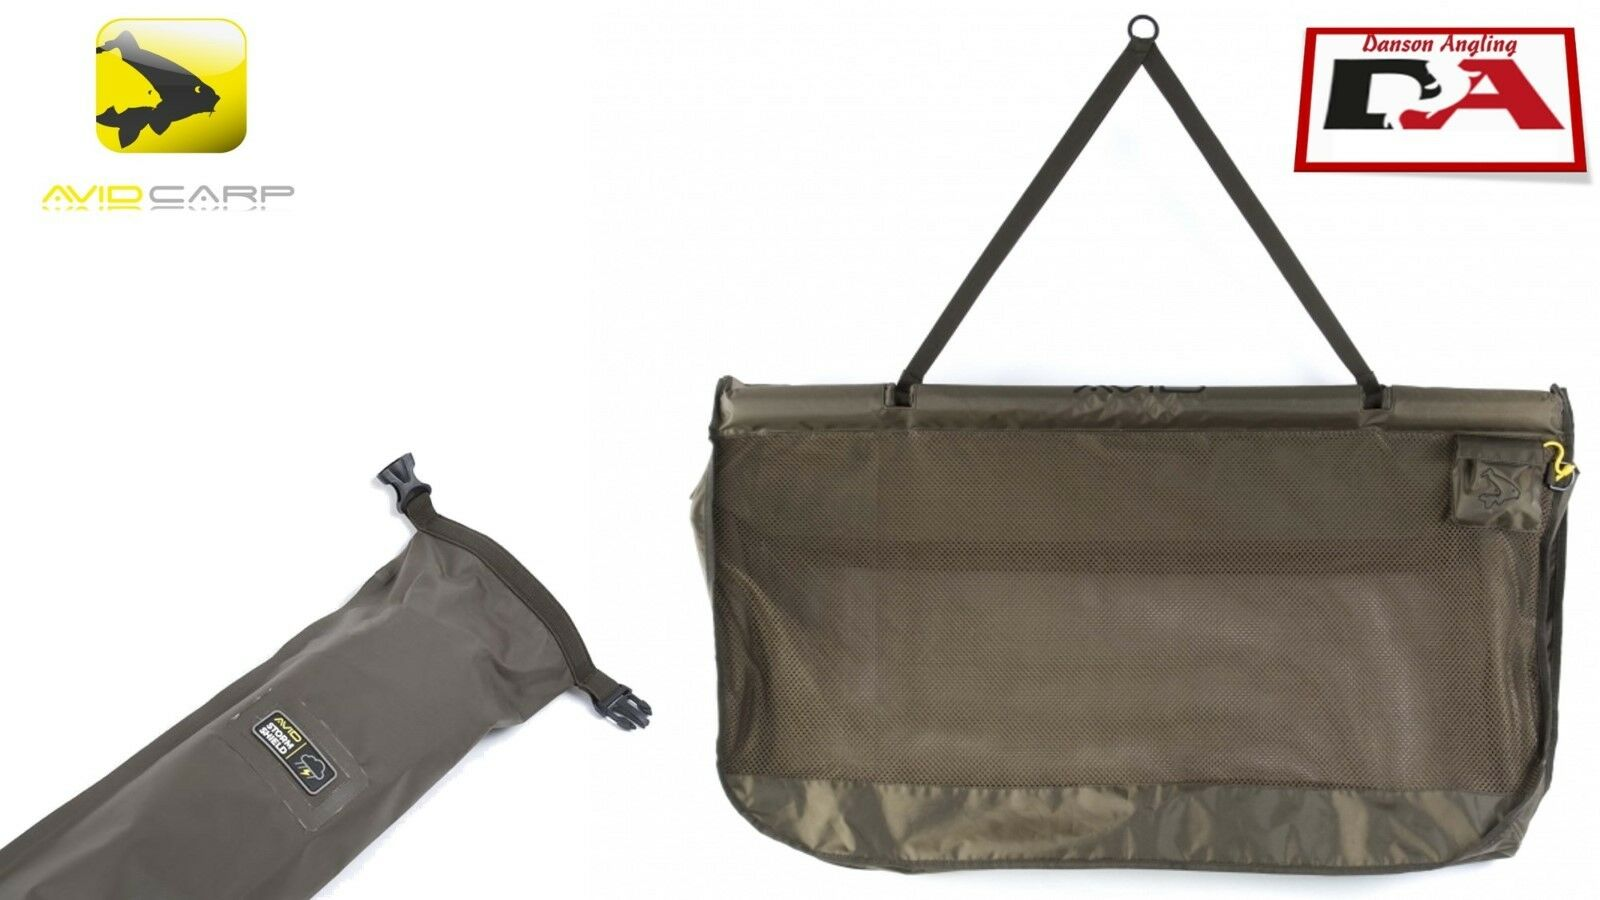 Avid Carp Recovery Sling Standard with Sormshield Stink Bag A0550003 NEW 2019